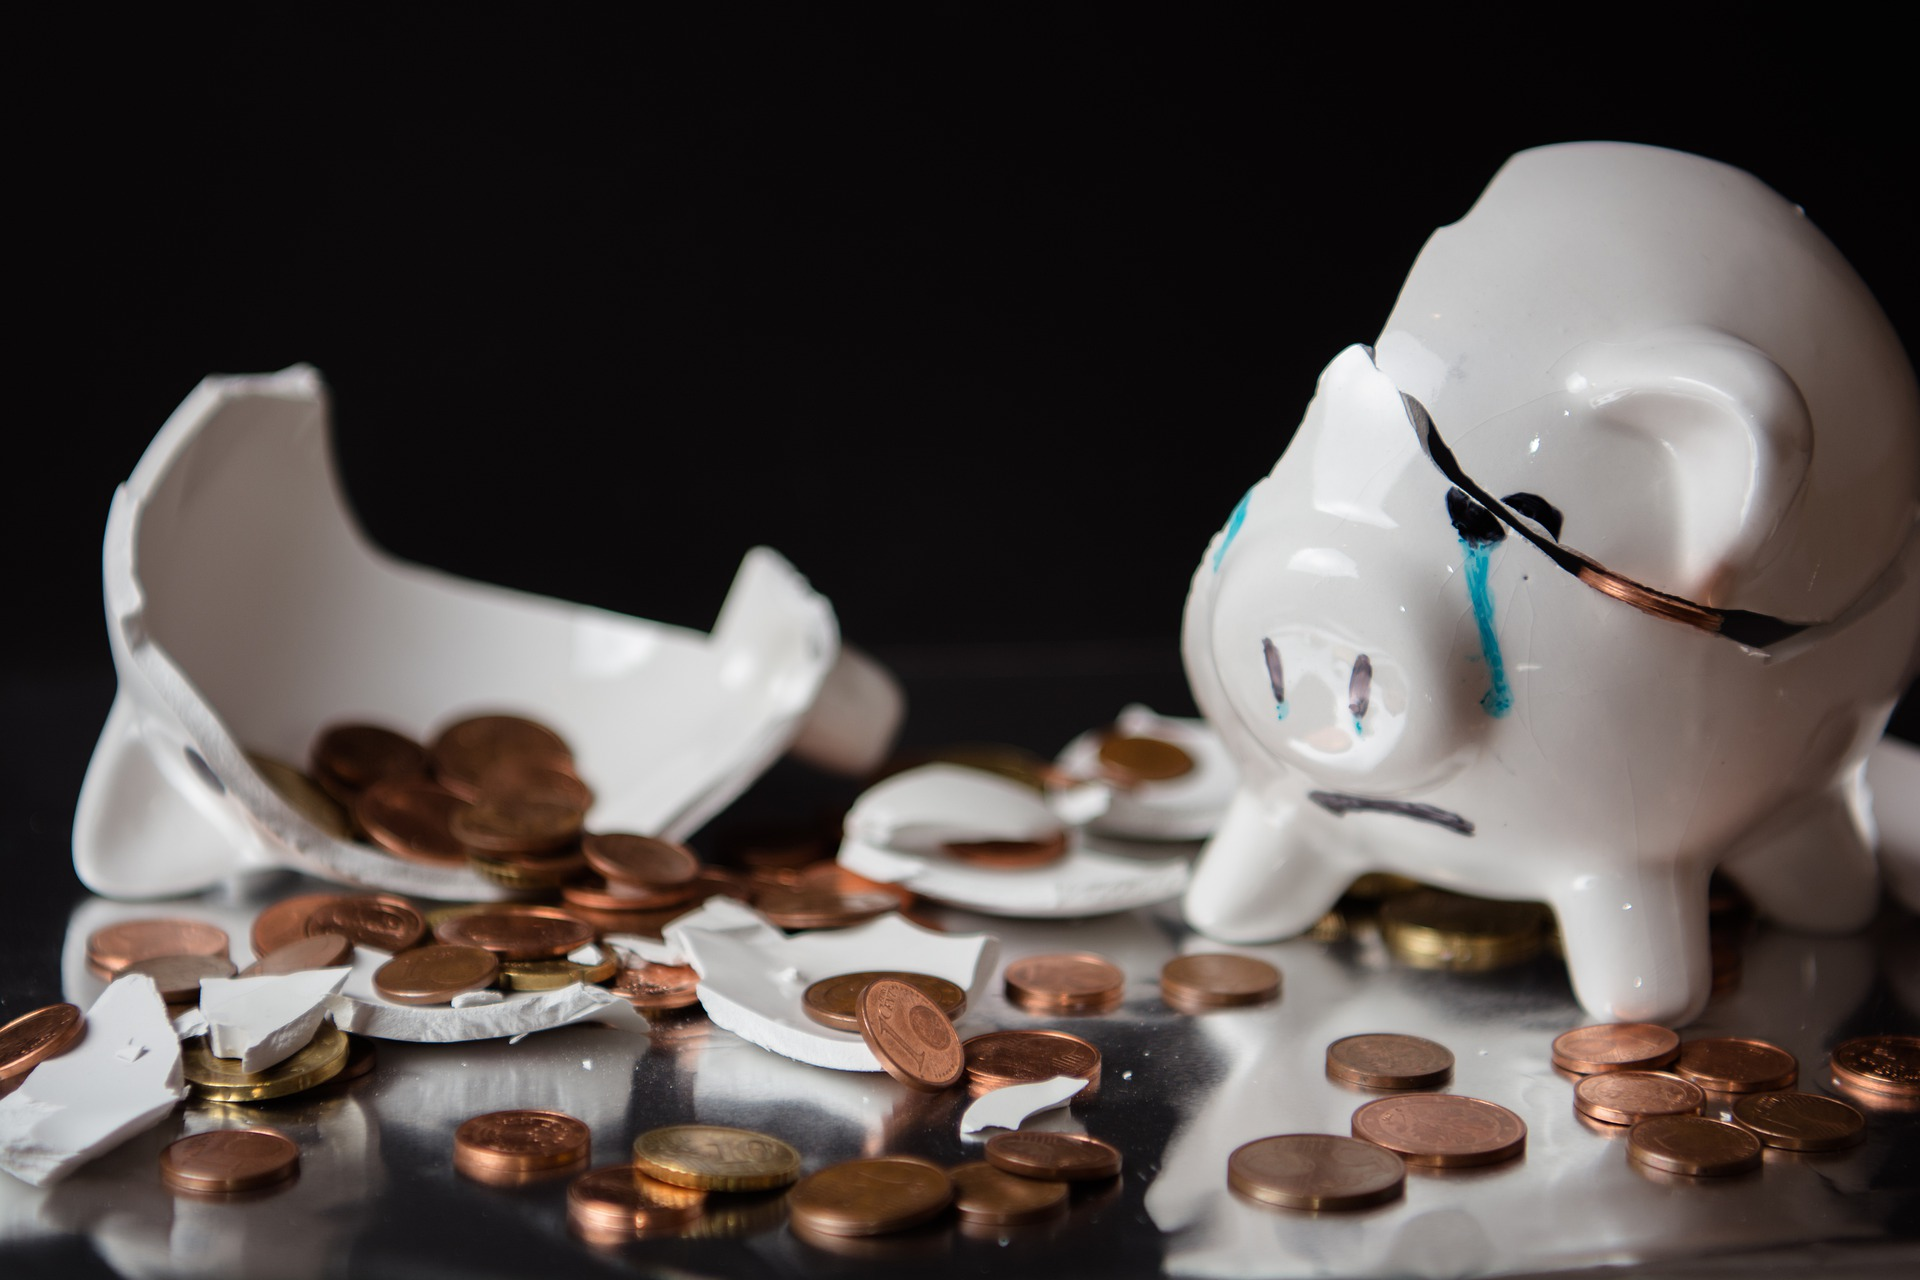 A broken piggy bank spills coins